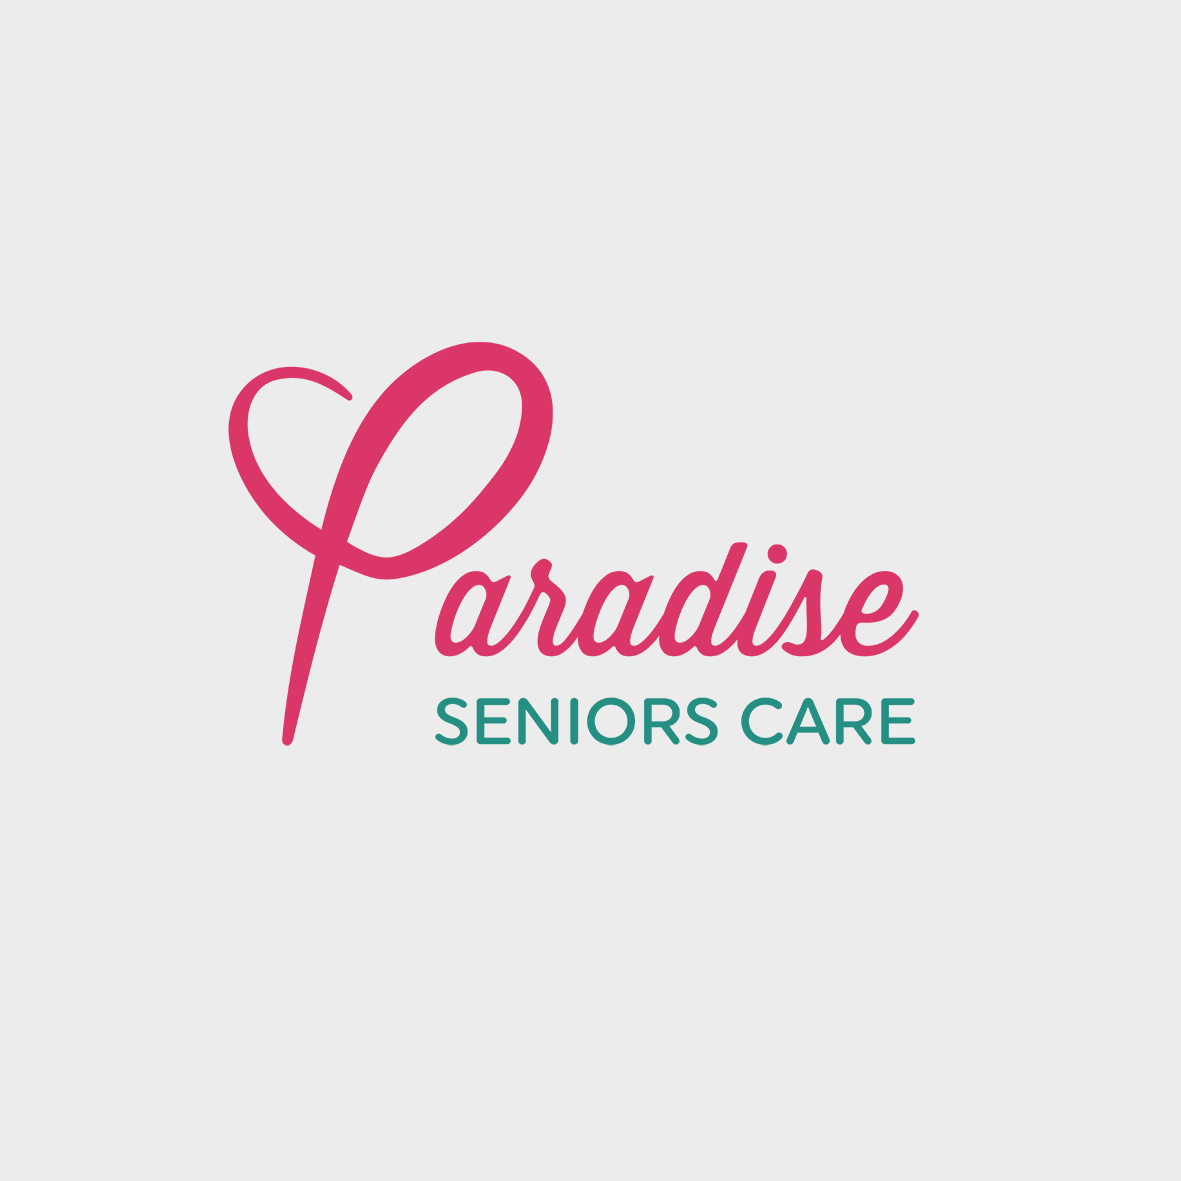 Paradise seniors care logo homepage